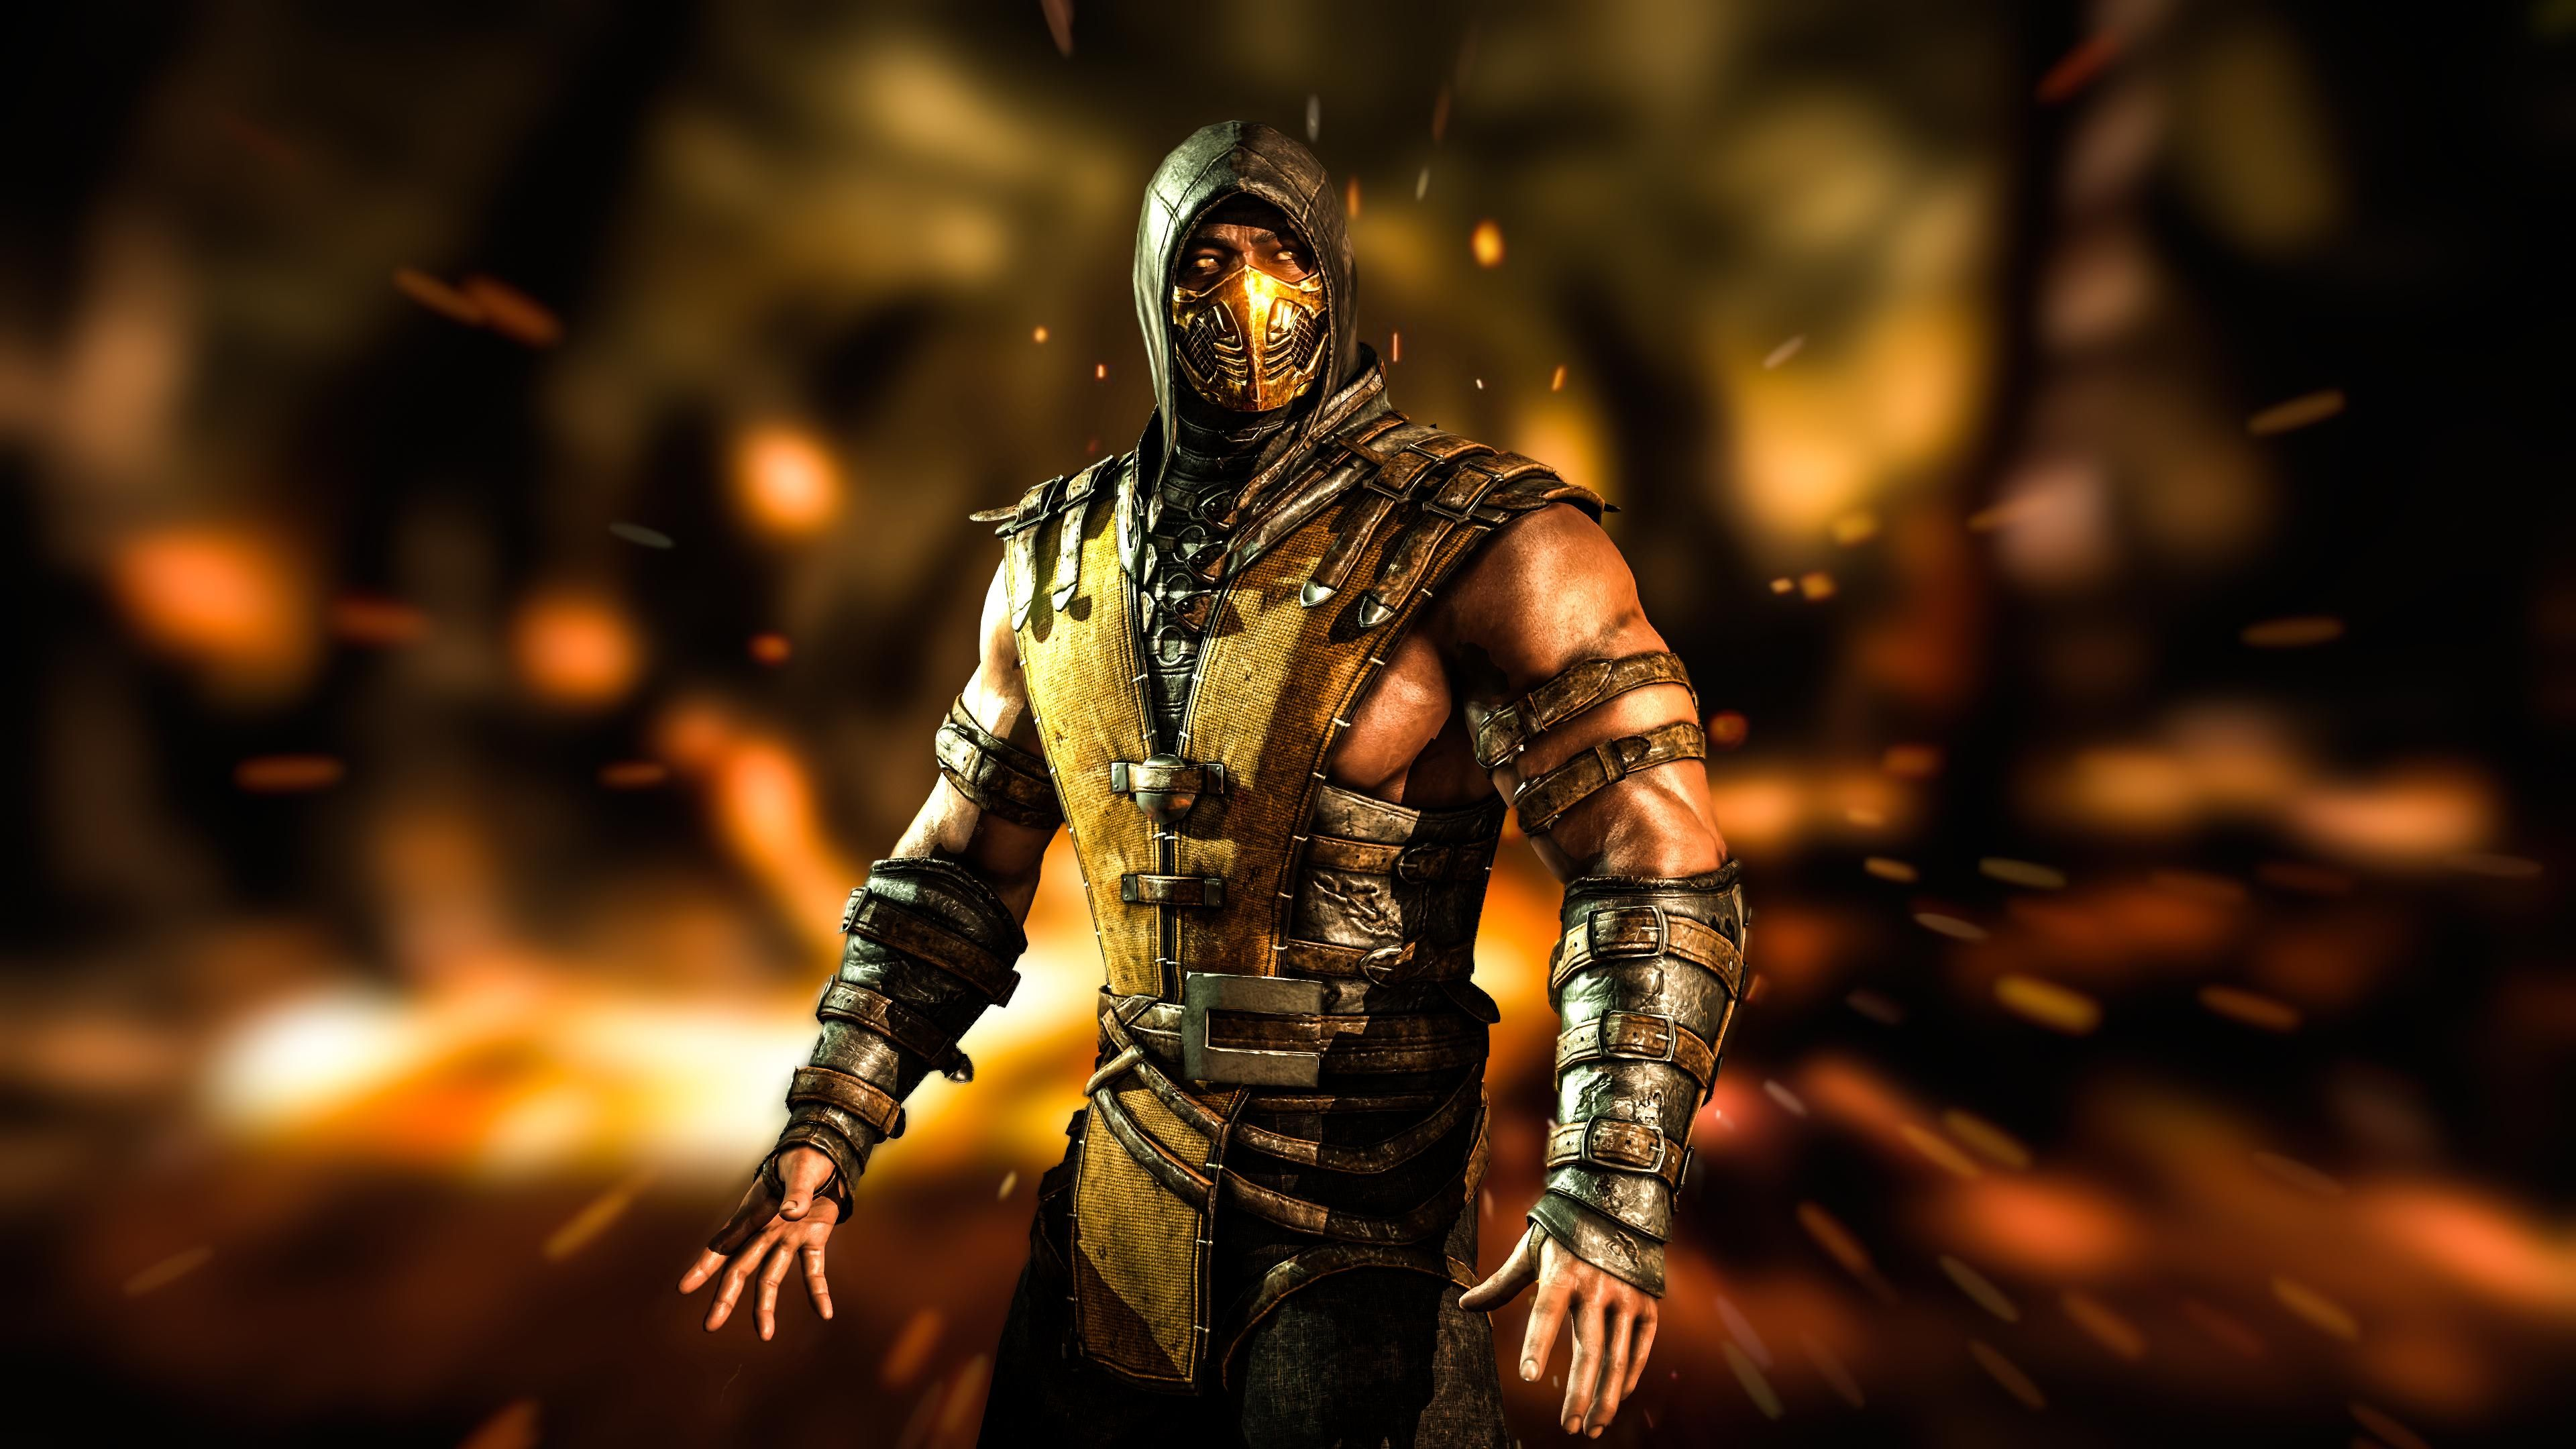 Mortal Kombat X Wallpaper Desktop Background Fys Game Desktop